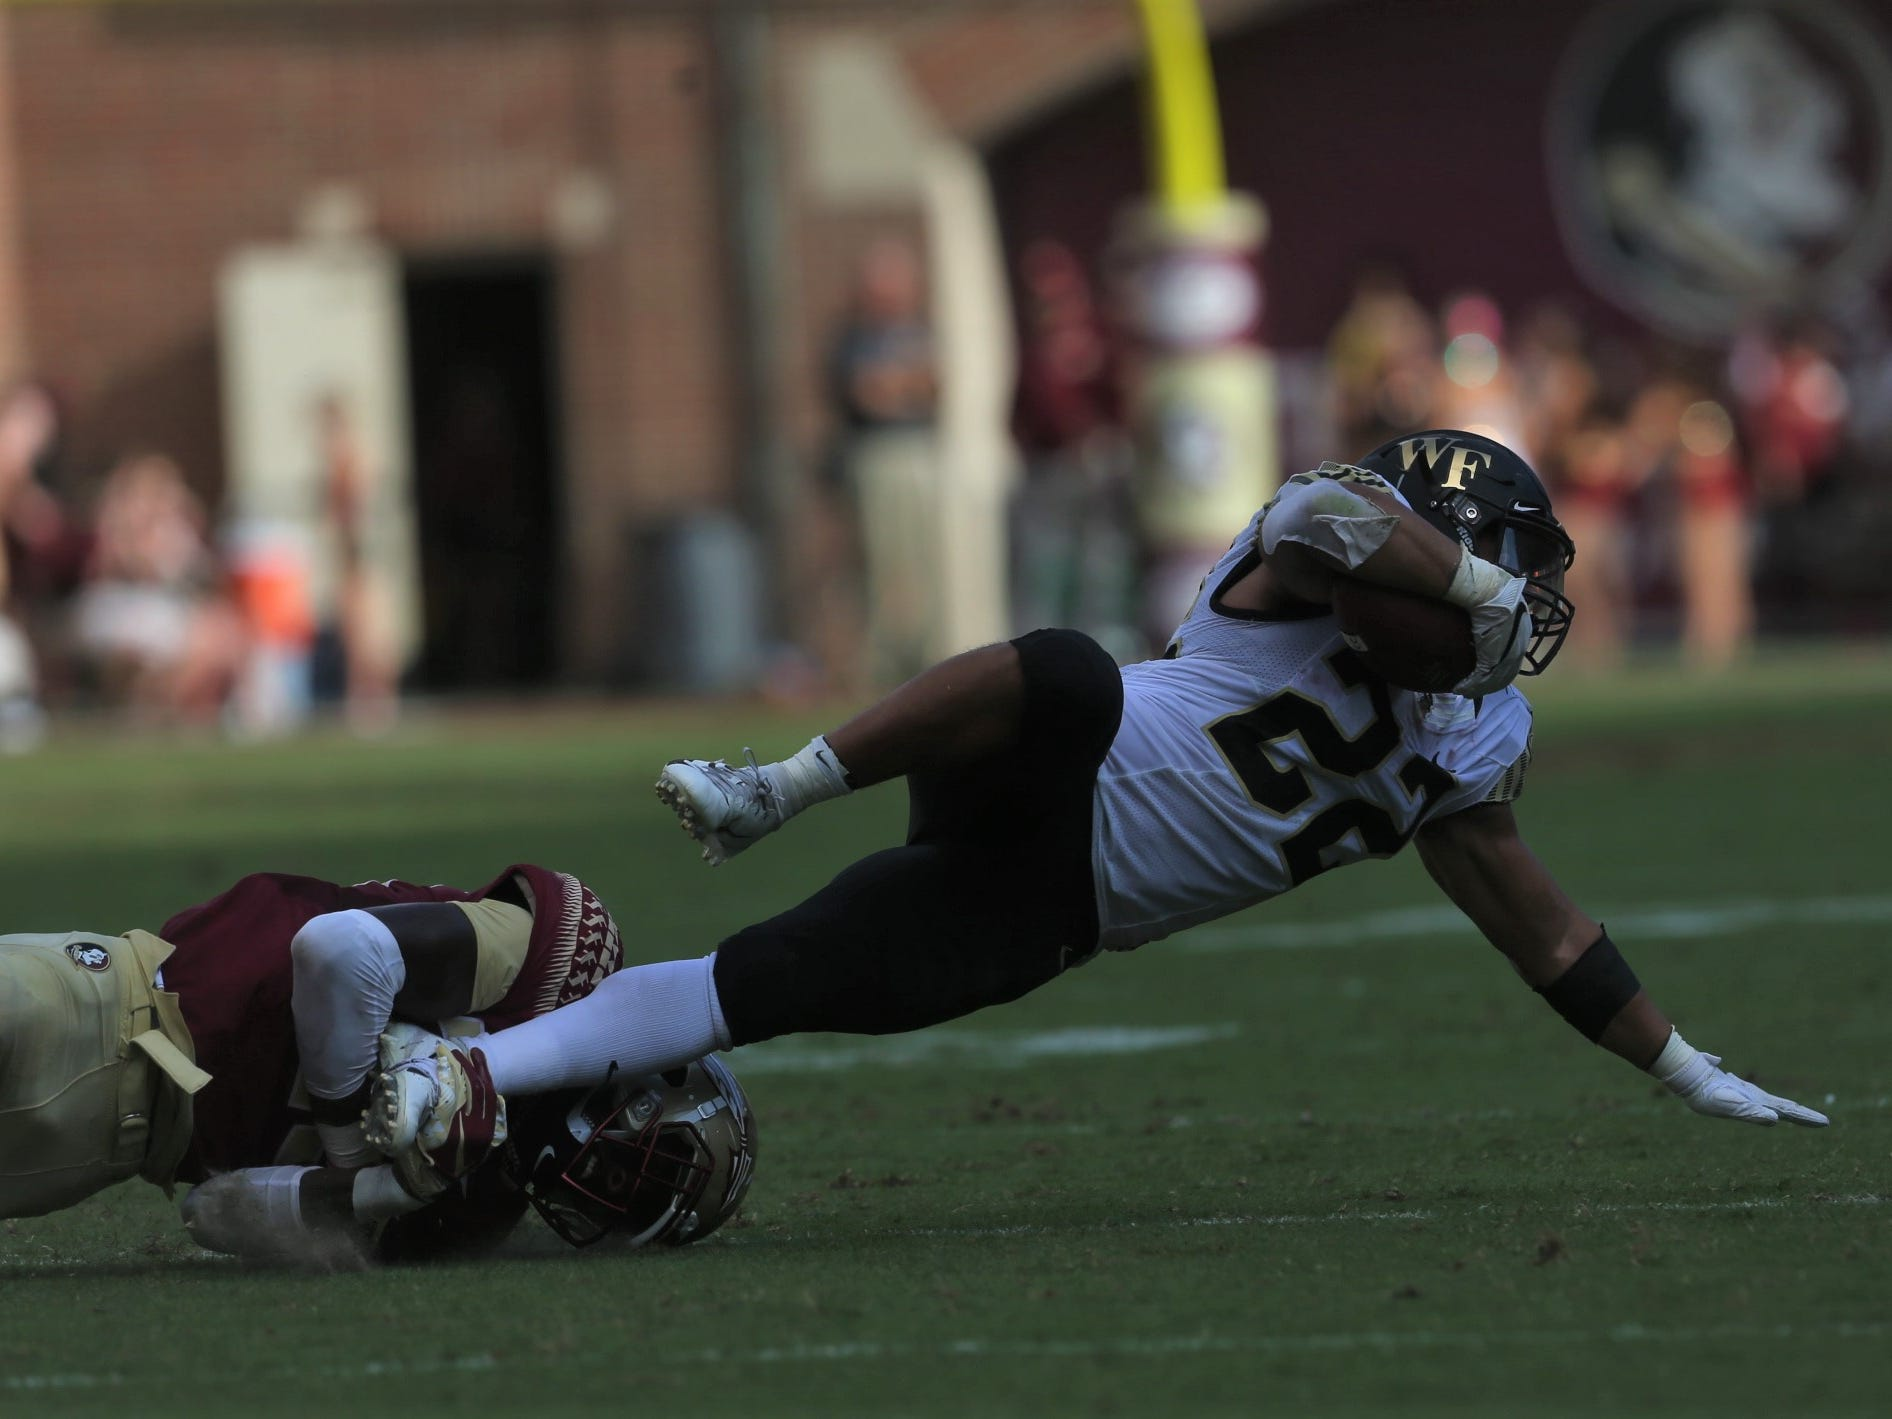 Wake Forest running back Matt Colburn II gets tackled by a Florida State defender during a game at Doak Campbell Stadium on Saturday, Oct. 20, 2018.